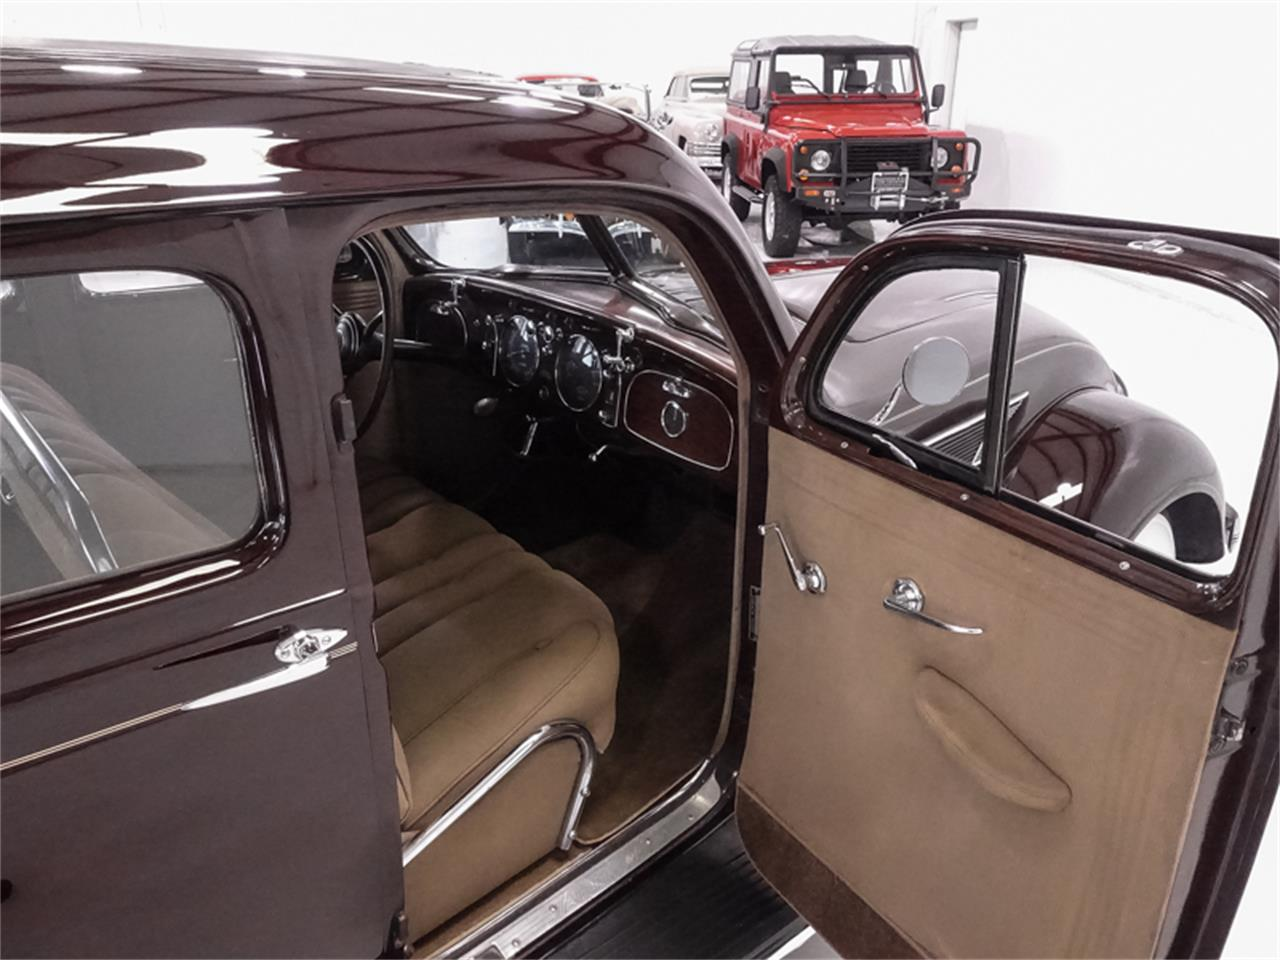 1935 Chrysler Airflow for sale in St. Louis, MO – photo 26